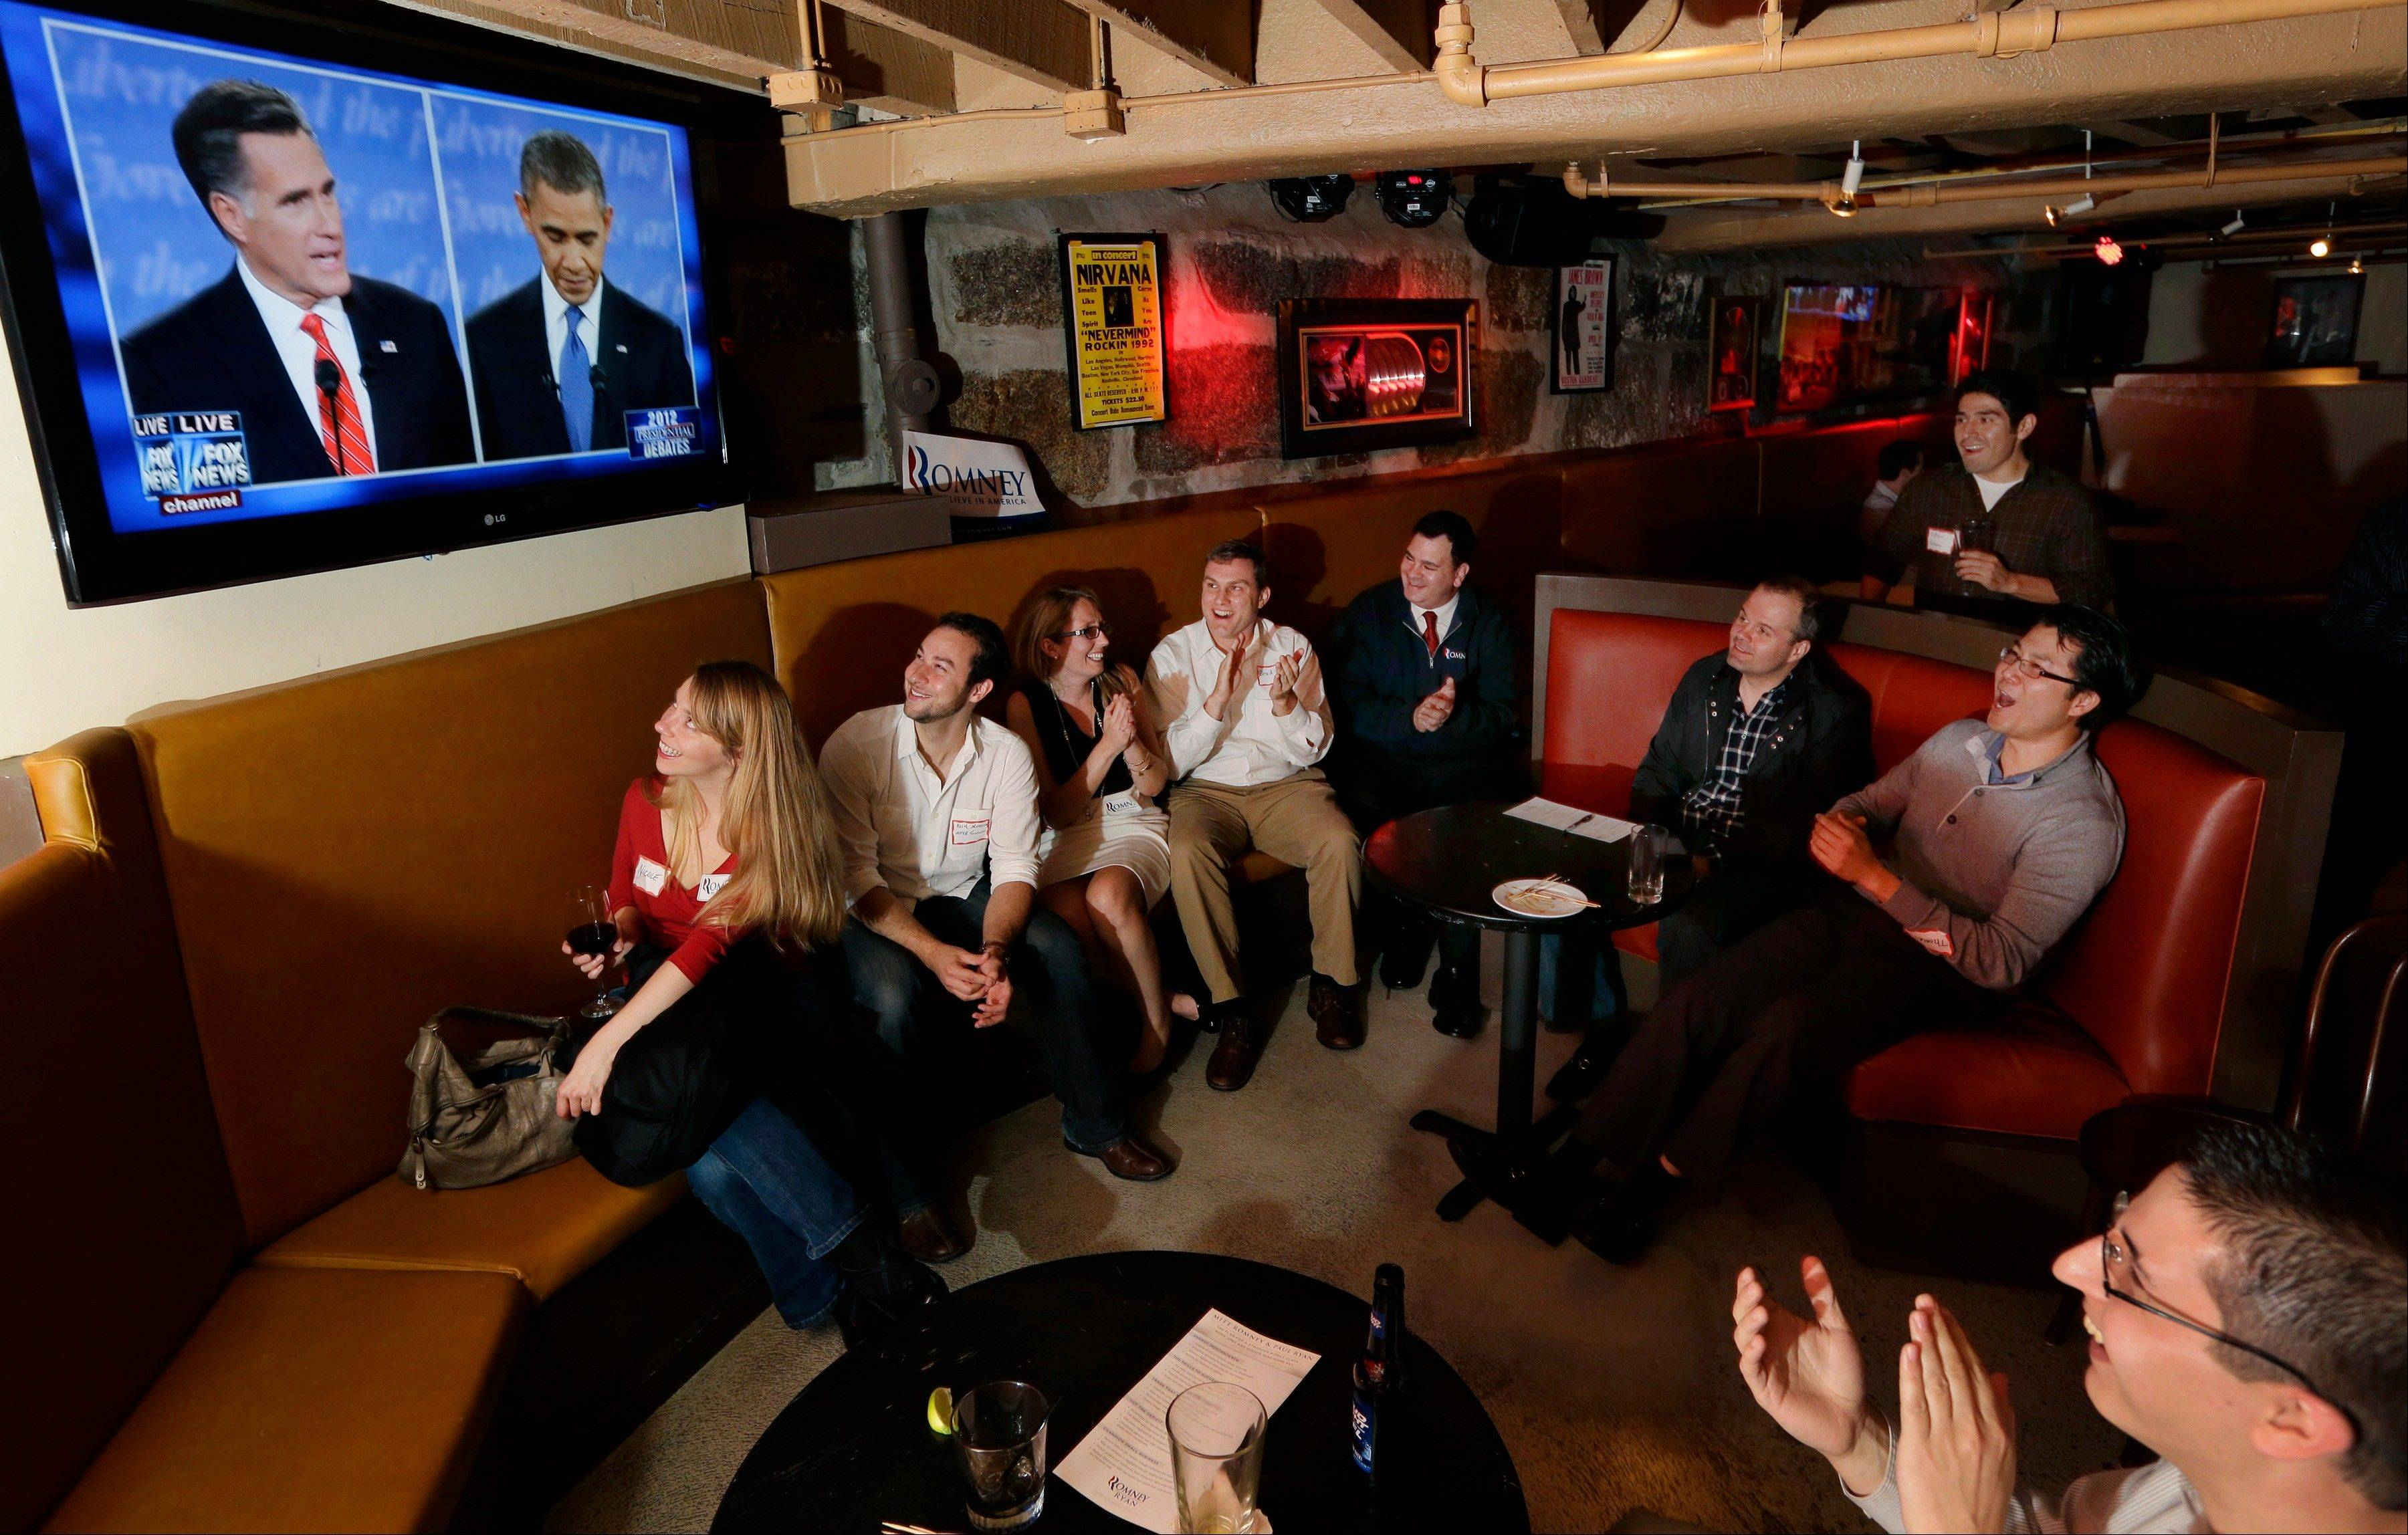 Members of the Massachusetts GOP Young Republicans react as they watch the first presidential debate between President Barack Obama and Republican Mitt Romney, Wednesday, Oct. 3, 2012, in Boston.